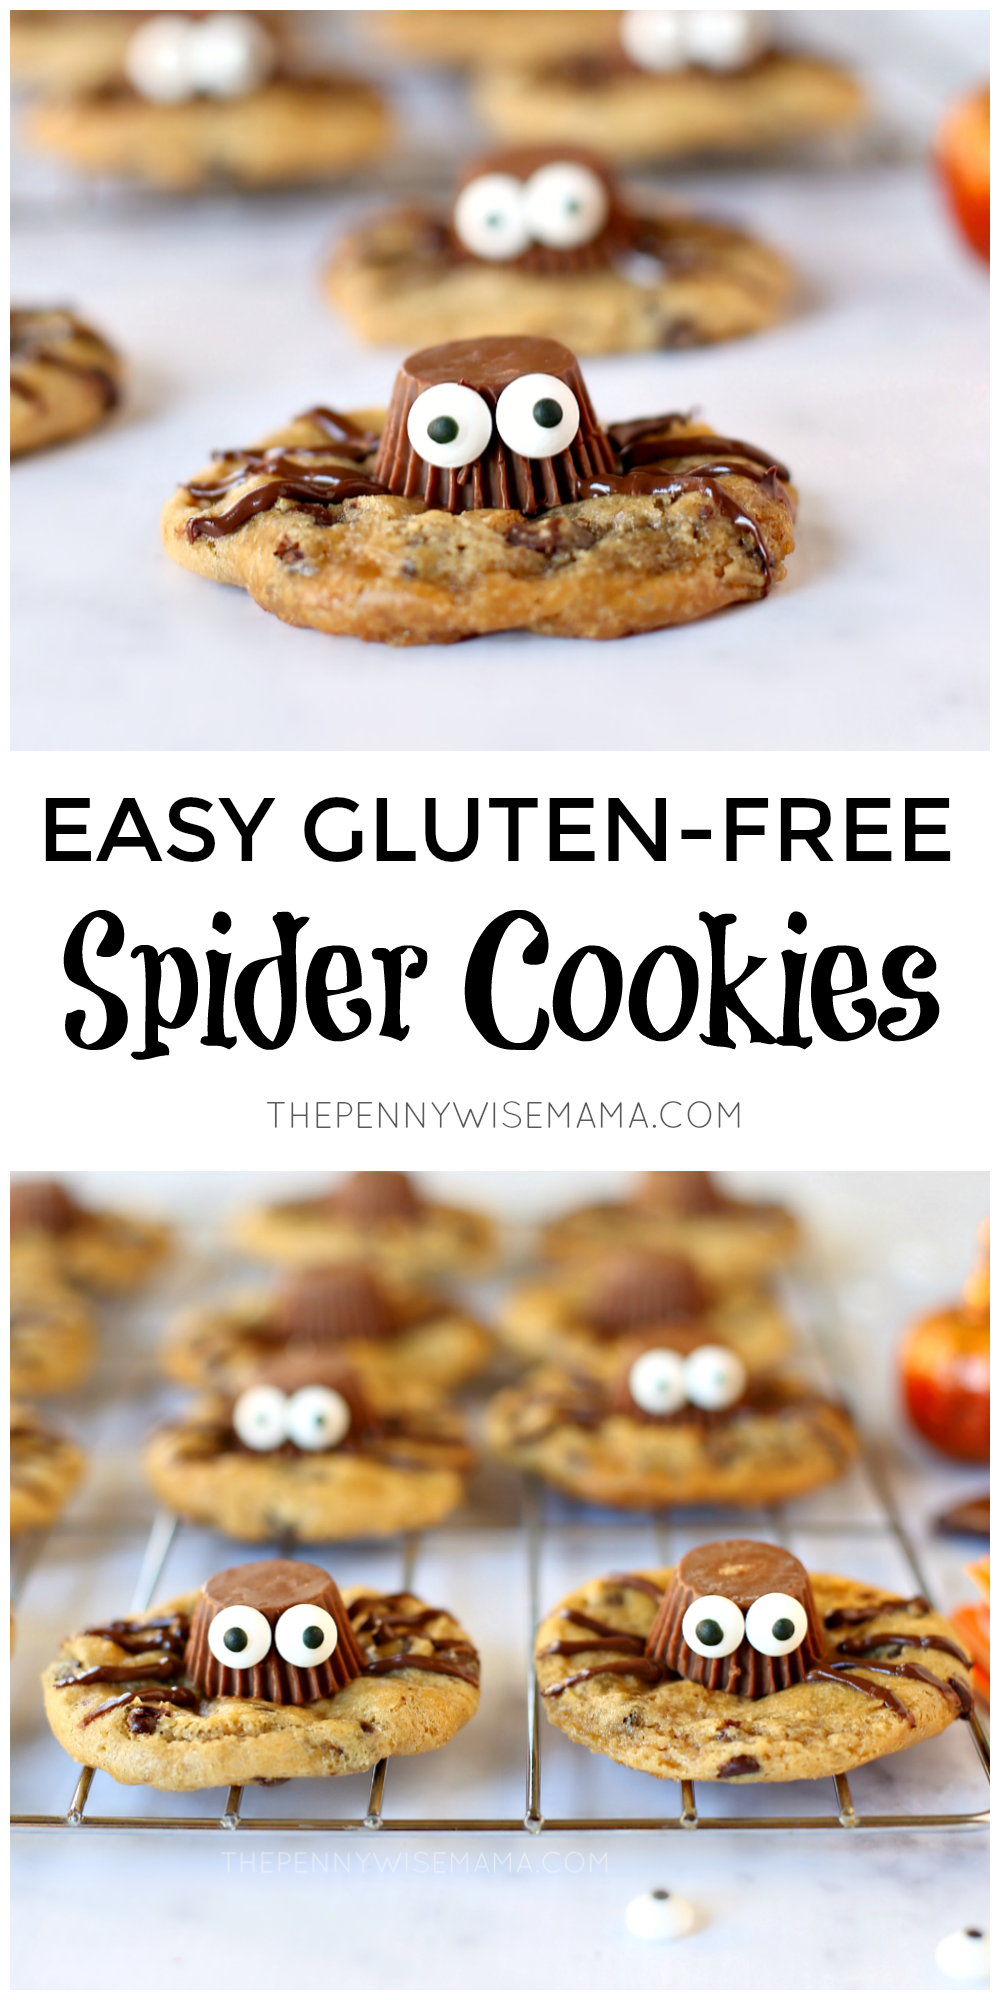 Quick & Easy Gluten-Free Spider Cookies for Halloween